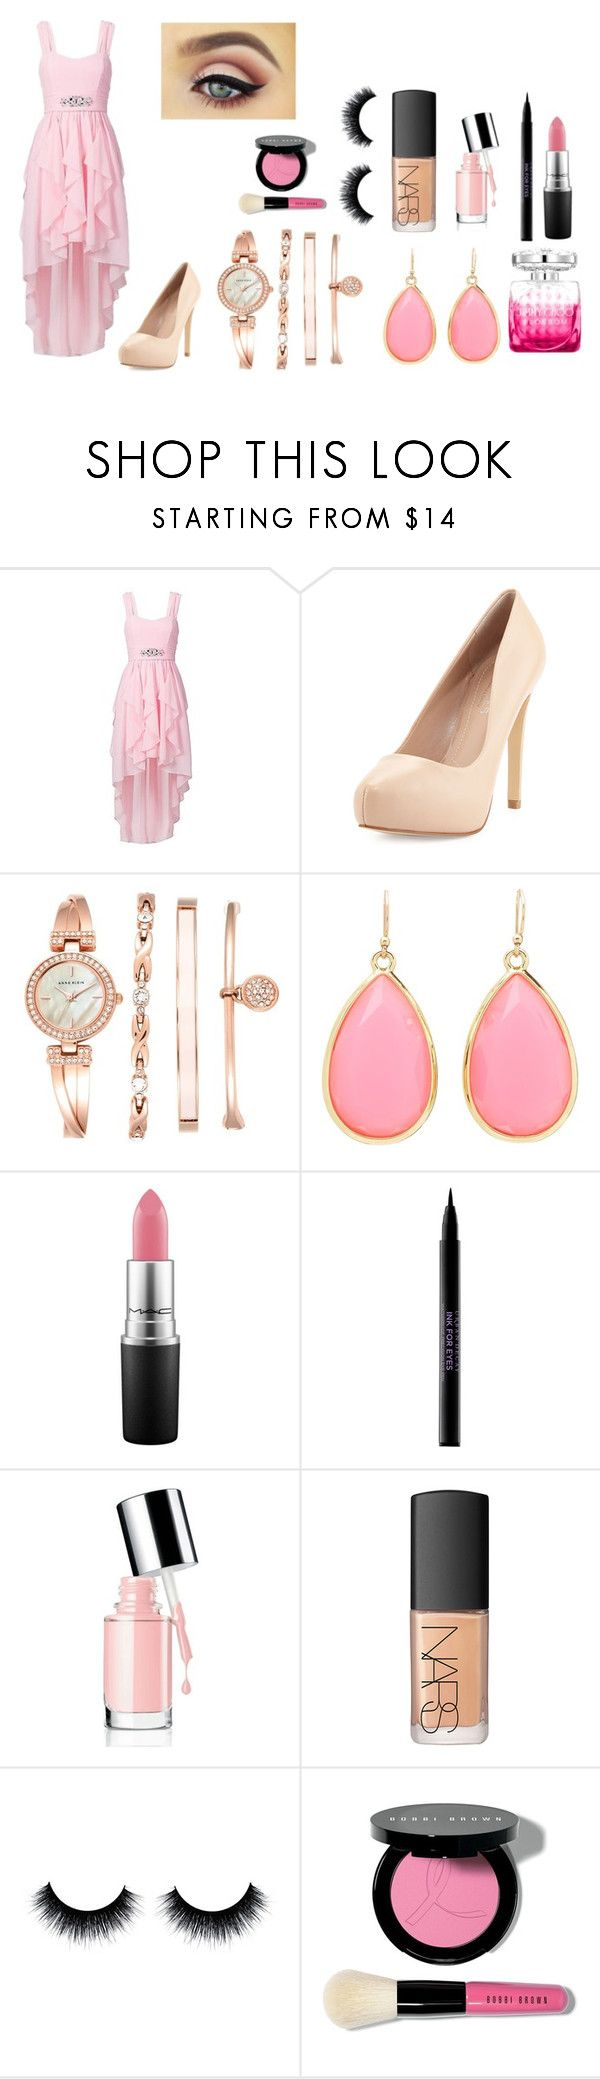 """LOL"" by veeruska-1 on Polyvore featuring Charles by Charles David, Anne Klein, Kate Spade, Jimmy Choo, MAC Cosmetics, Urban Decay, NARS Cosmetics and Bobbi Brown Cosmetics"